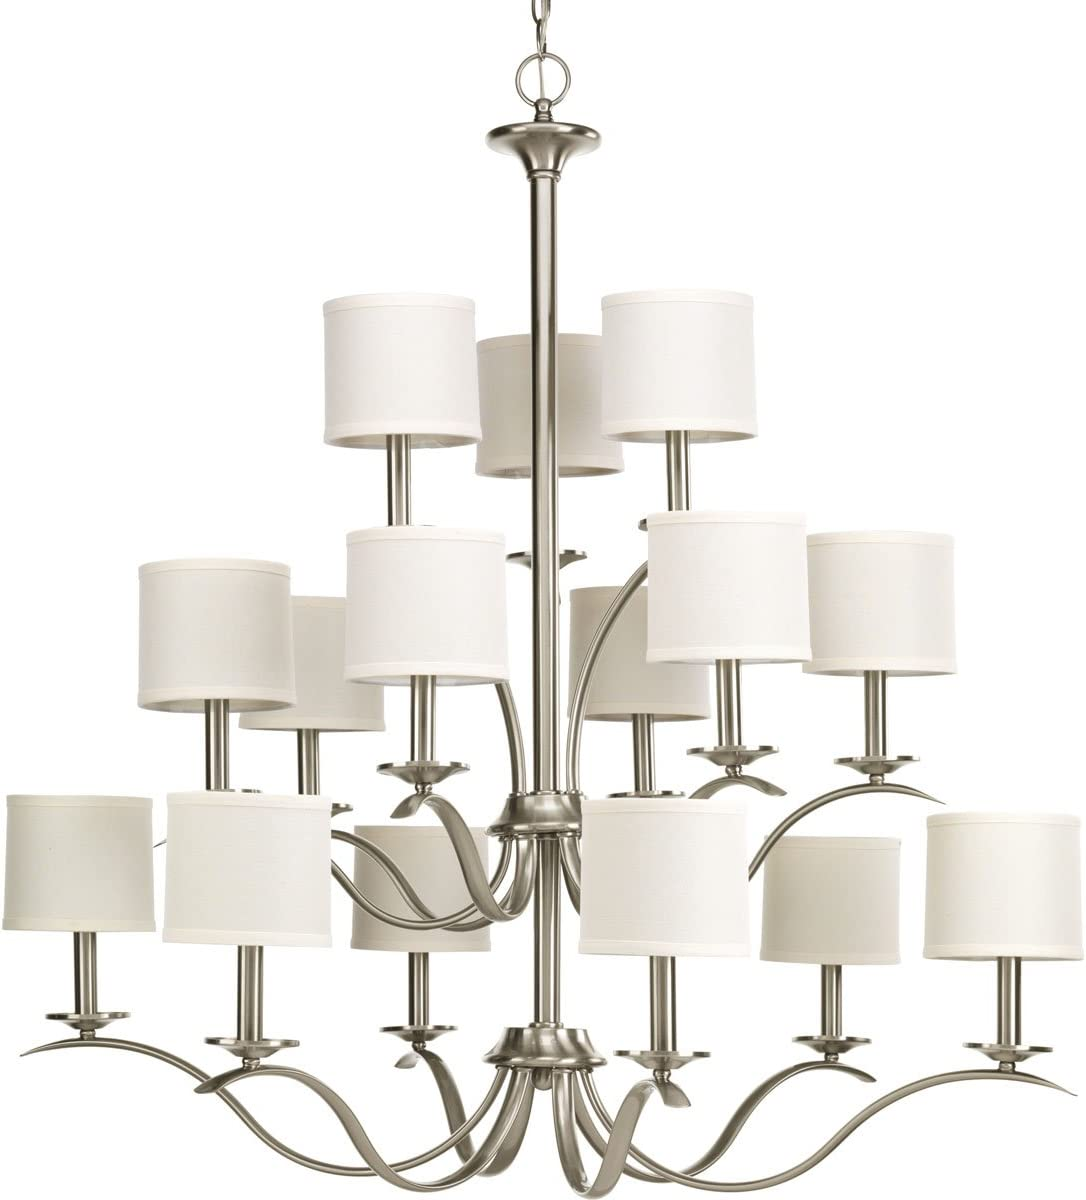 Progress Lighting P4650-09 Transitional 15 Light Chandelier from Inspire Collection in Pwt, Nckl, B S, Slvr. Finish, Brushed Nickel